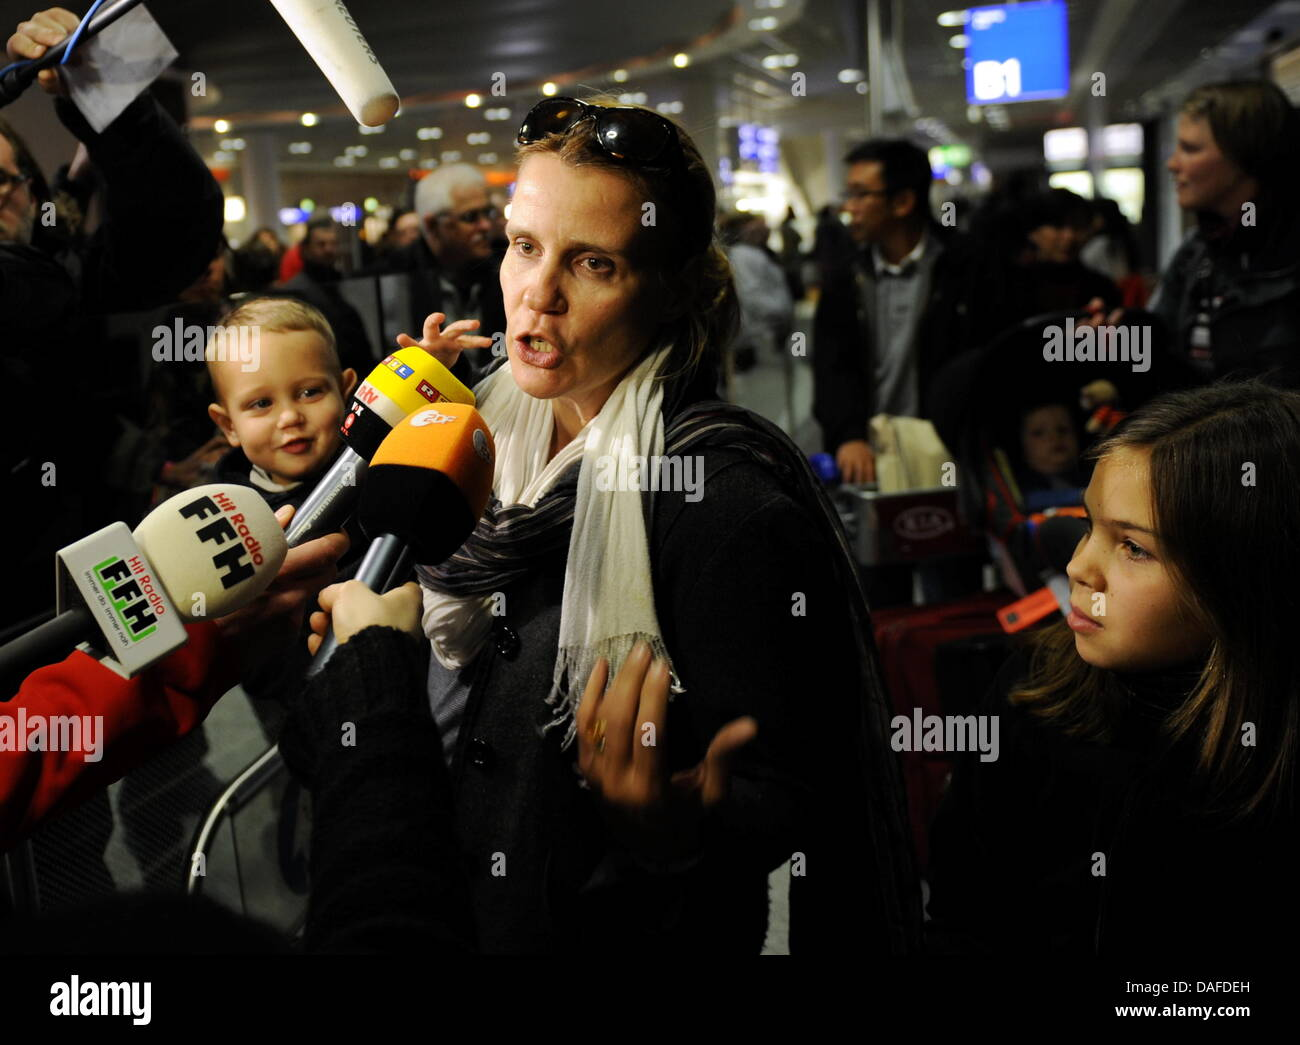 Katja T. from Berlin accompanied by her children speaks to journalists on her arrival from Tripoli, Libya, at the - Stock Image